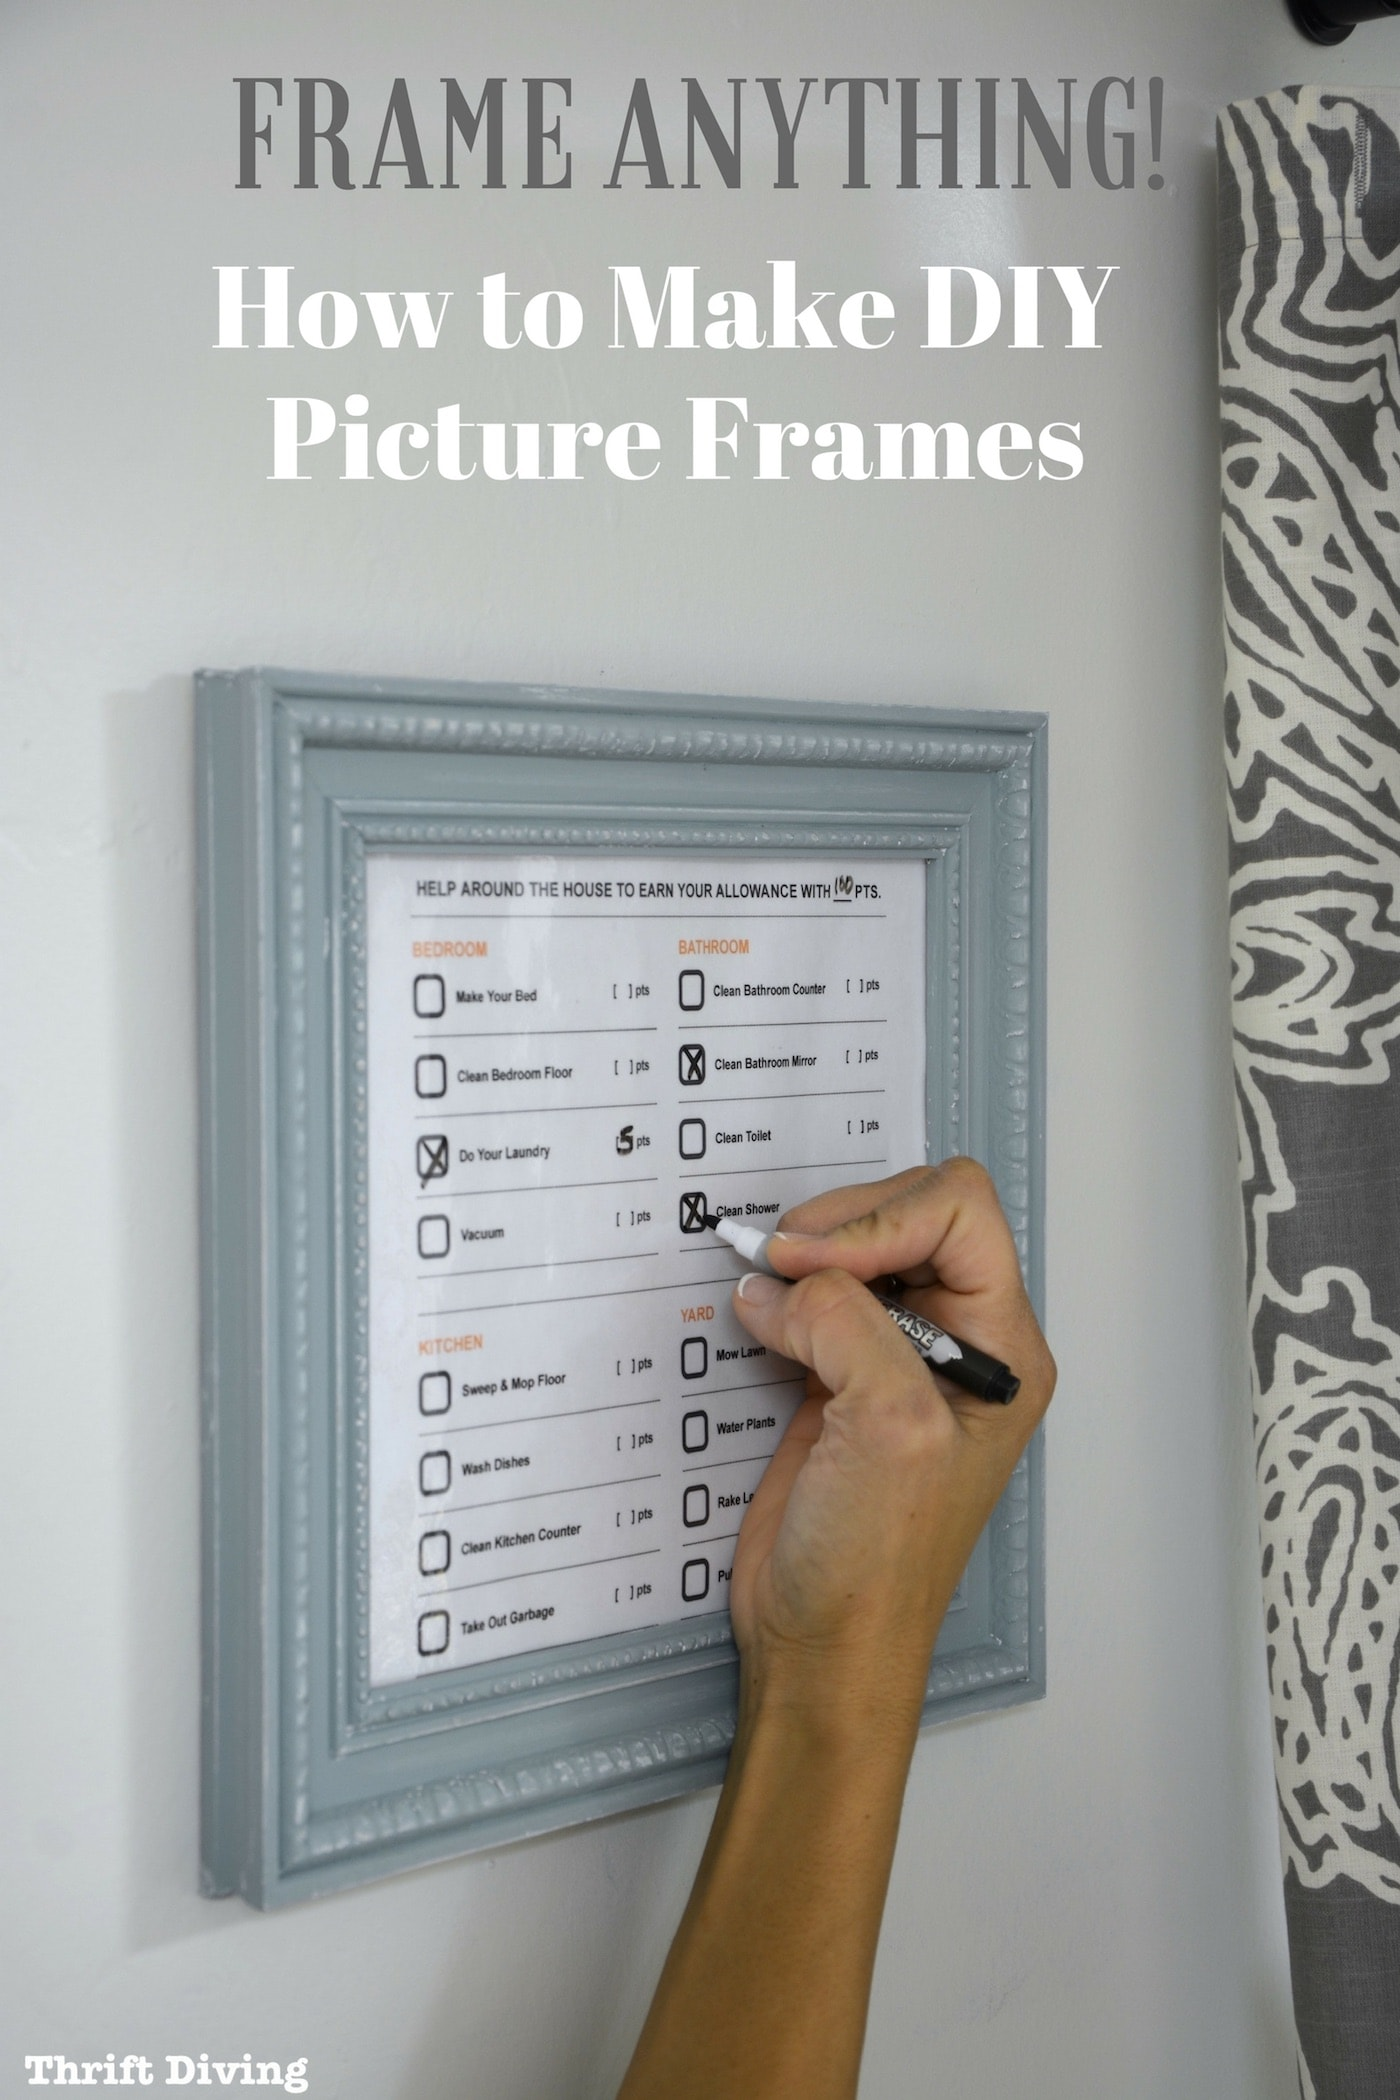 Diy Picture Frame Glass How To Make Your Own Diy Picture Frames Without Power Tools